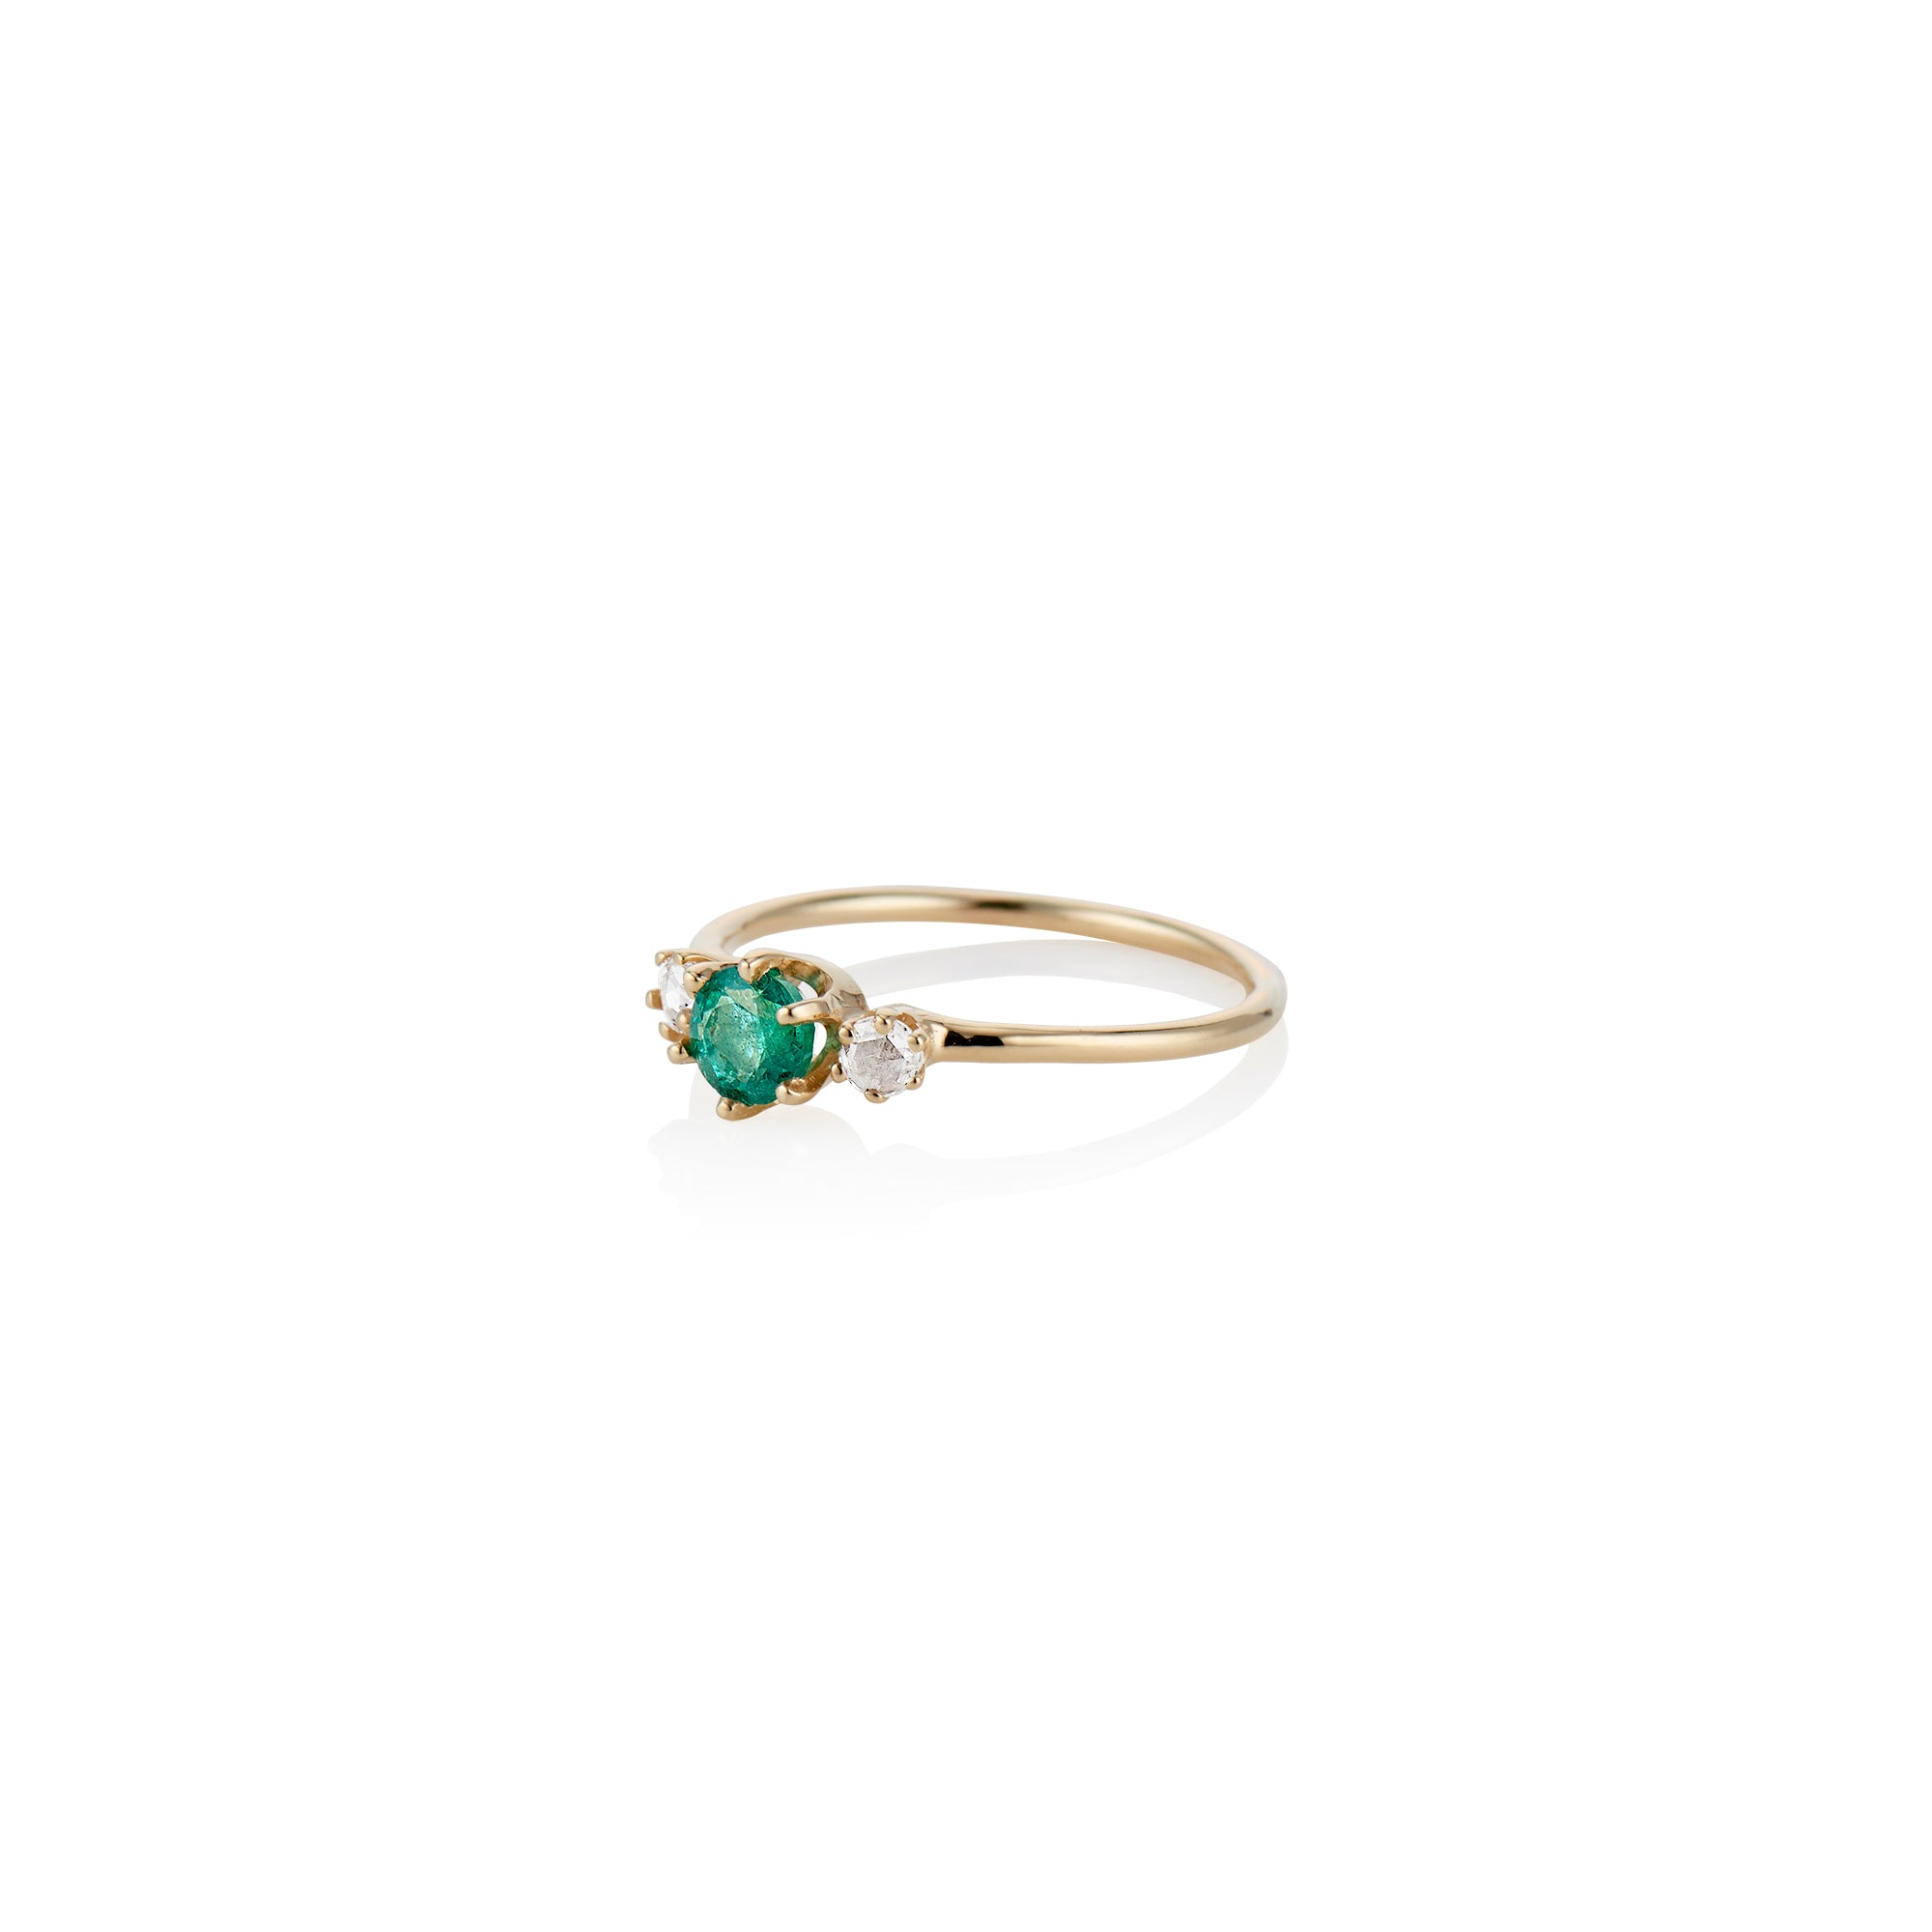 Darling Emerald Ring - Charlie and Marcelle